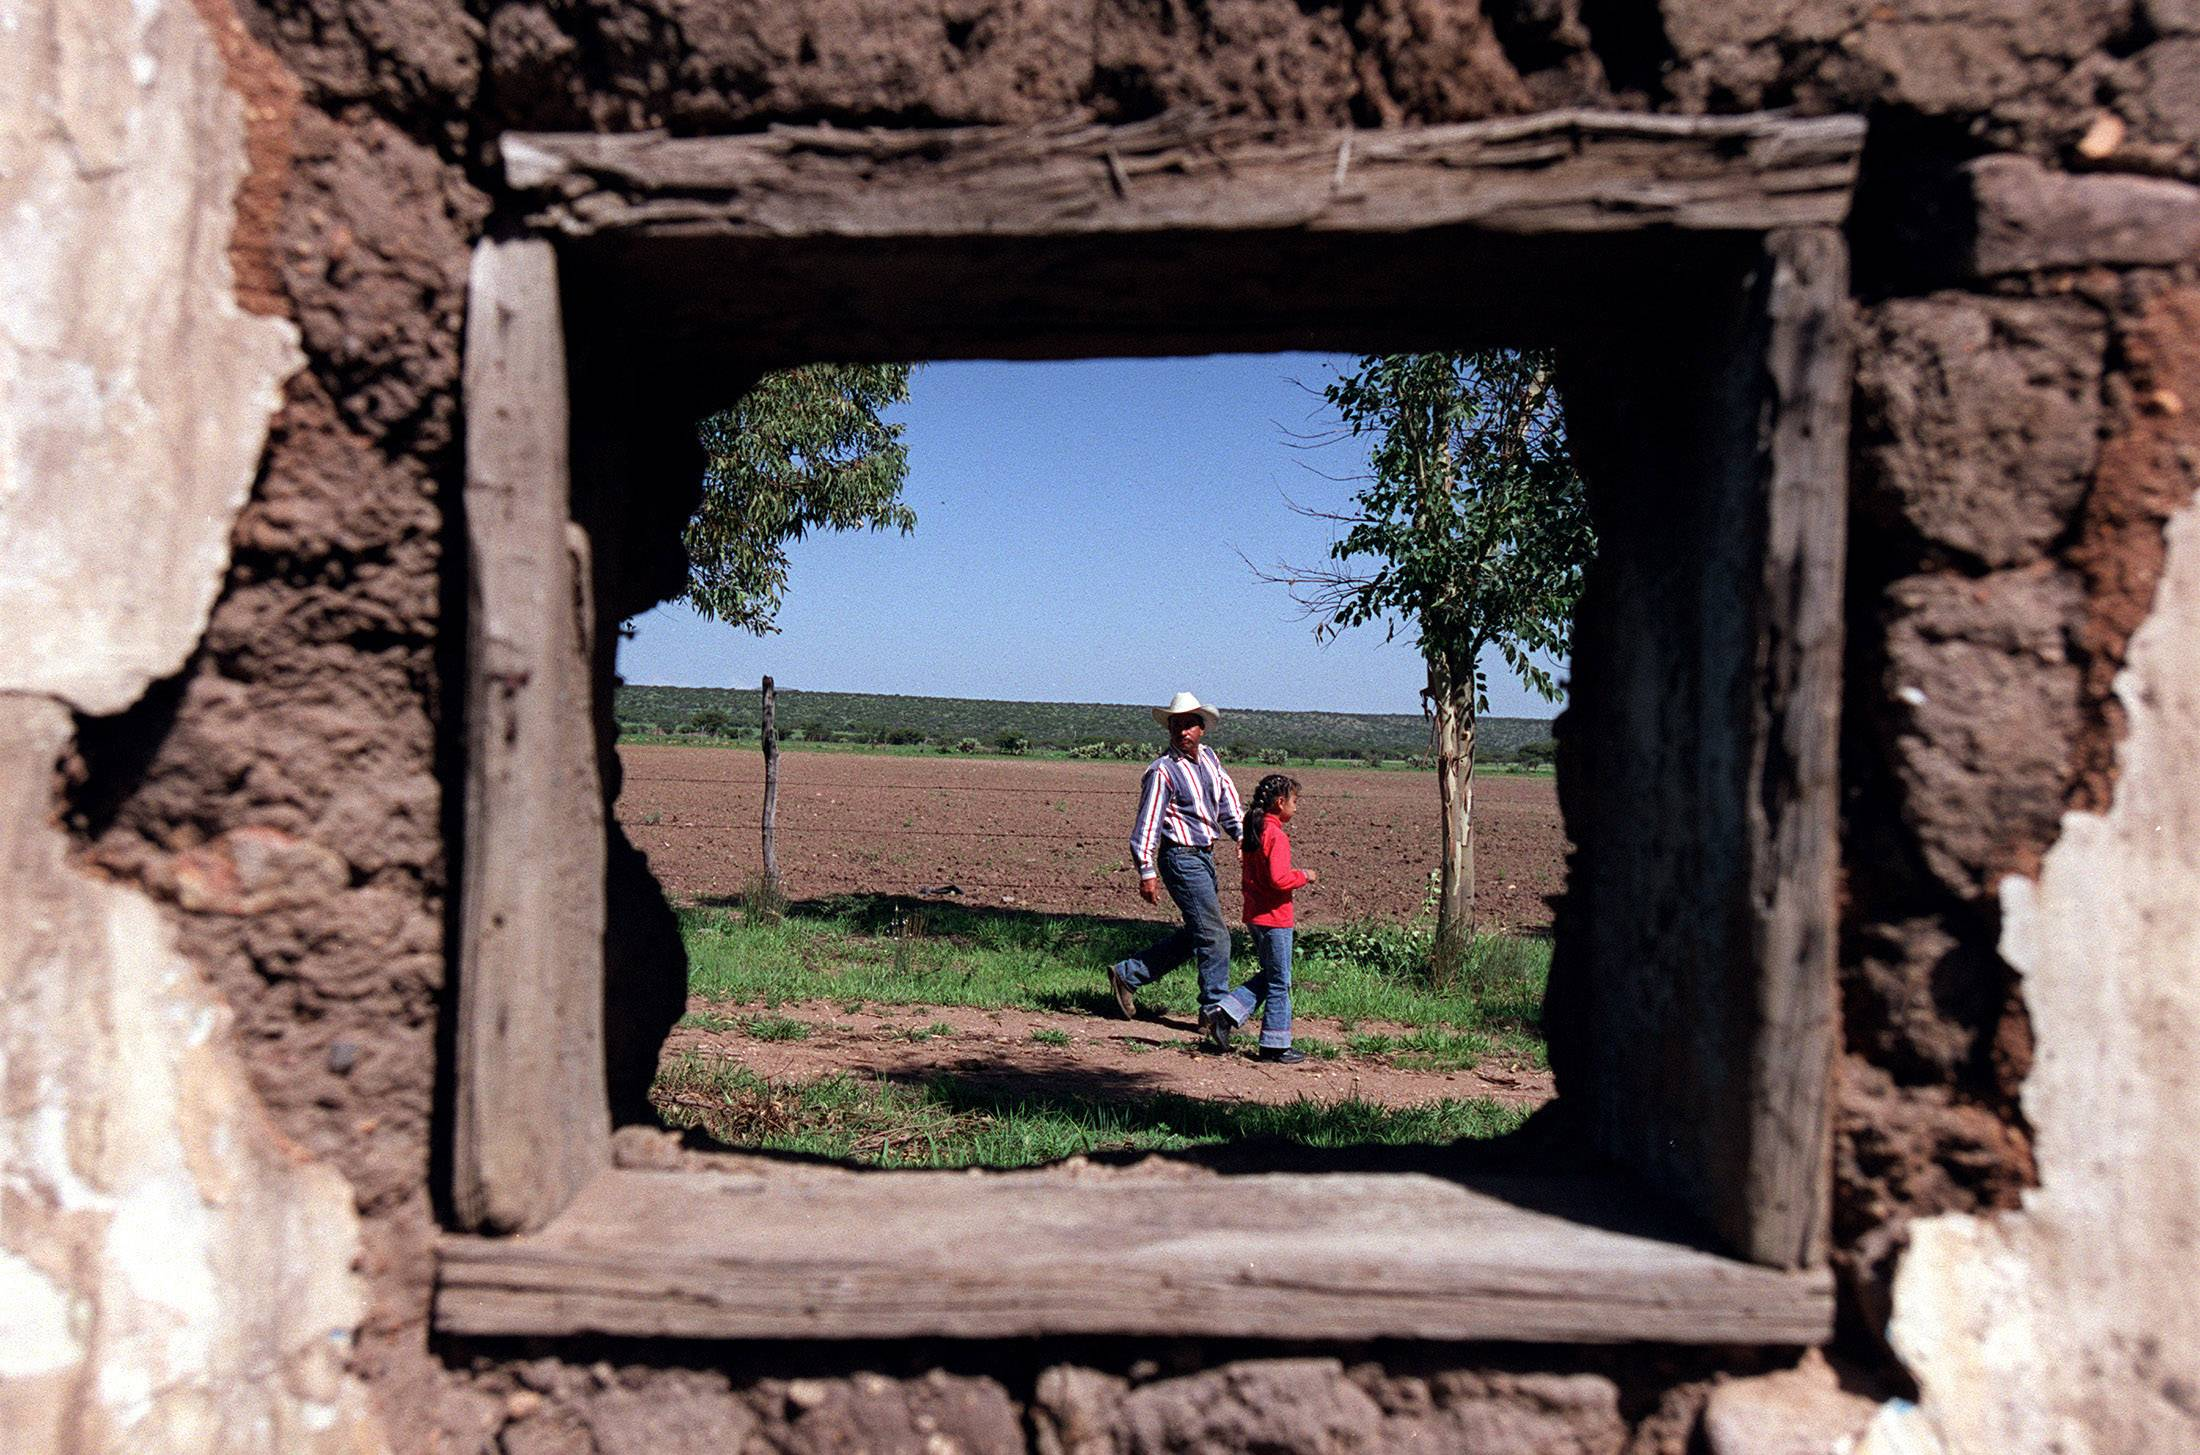 Antonio and Yesenia Martinez are framed by an old building on their ranch that was likely home to Palatine teacher Lupe Schoffstall during her early years in Zacatecas.